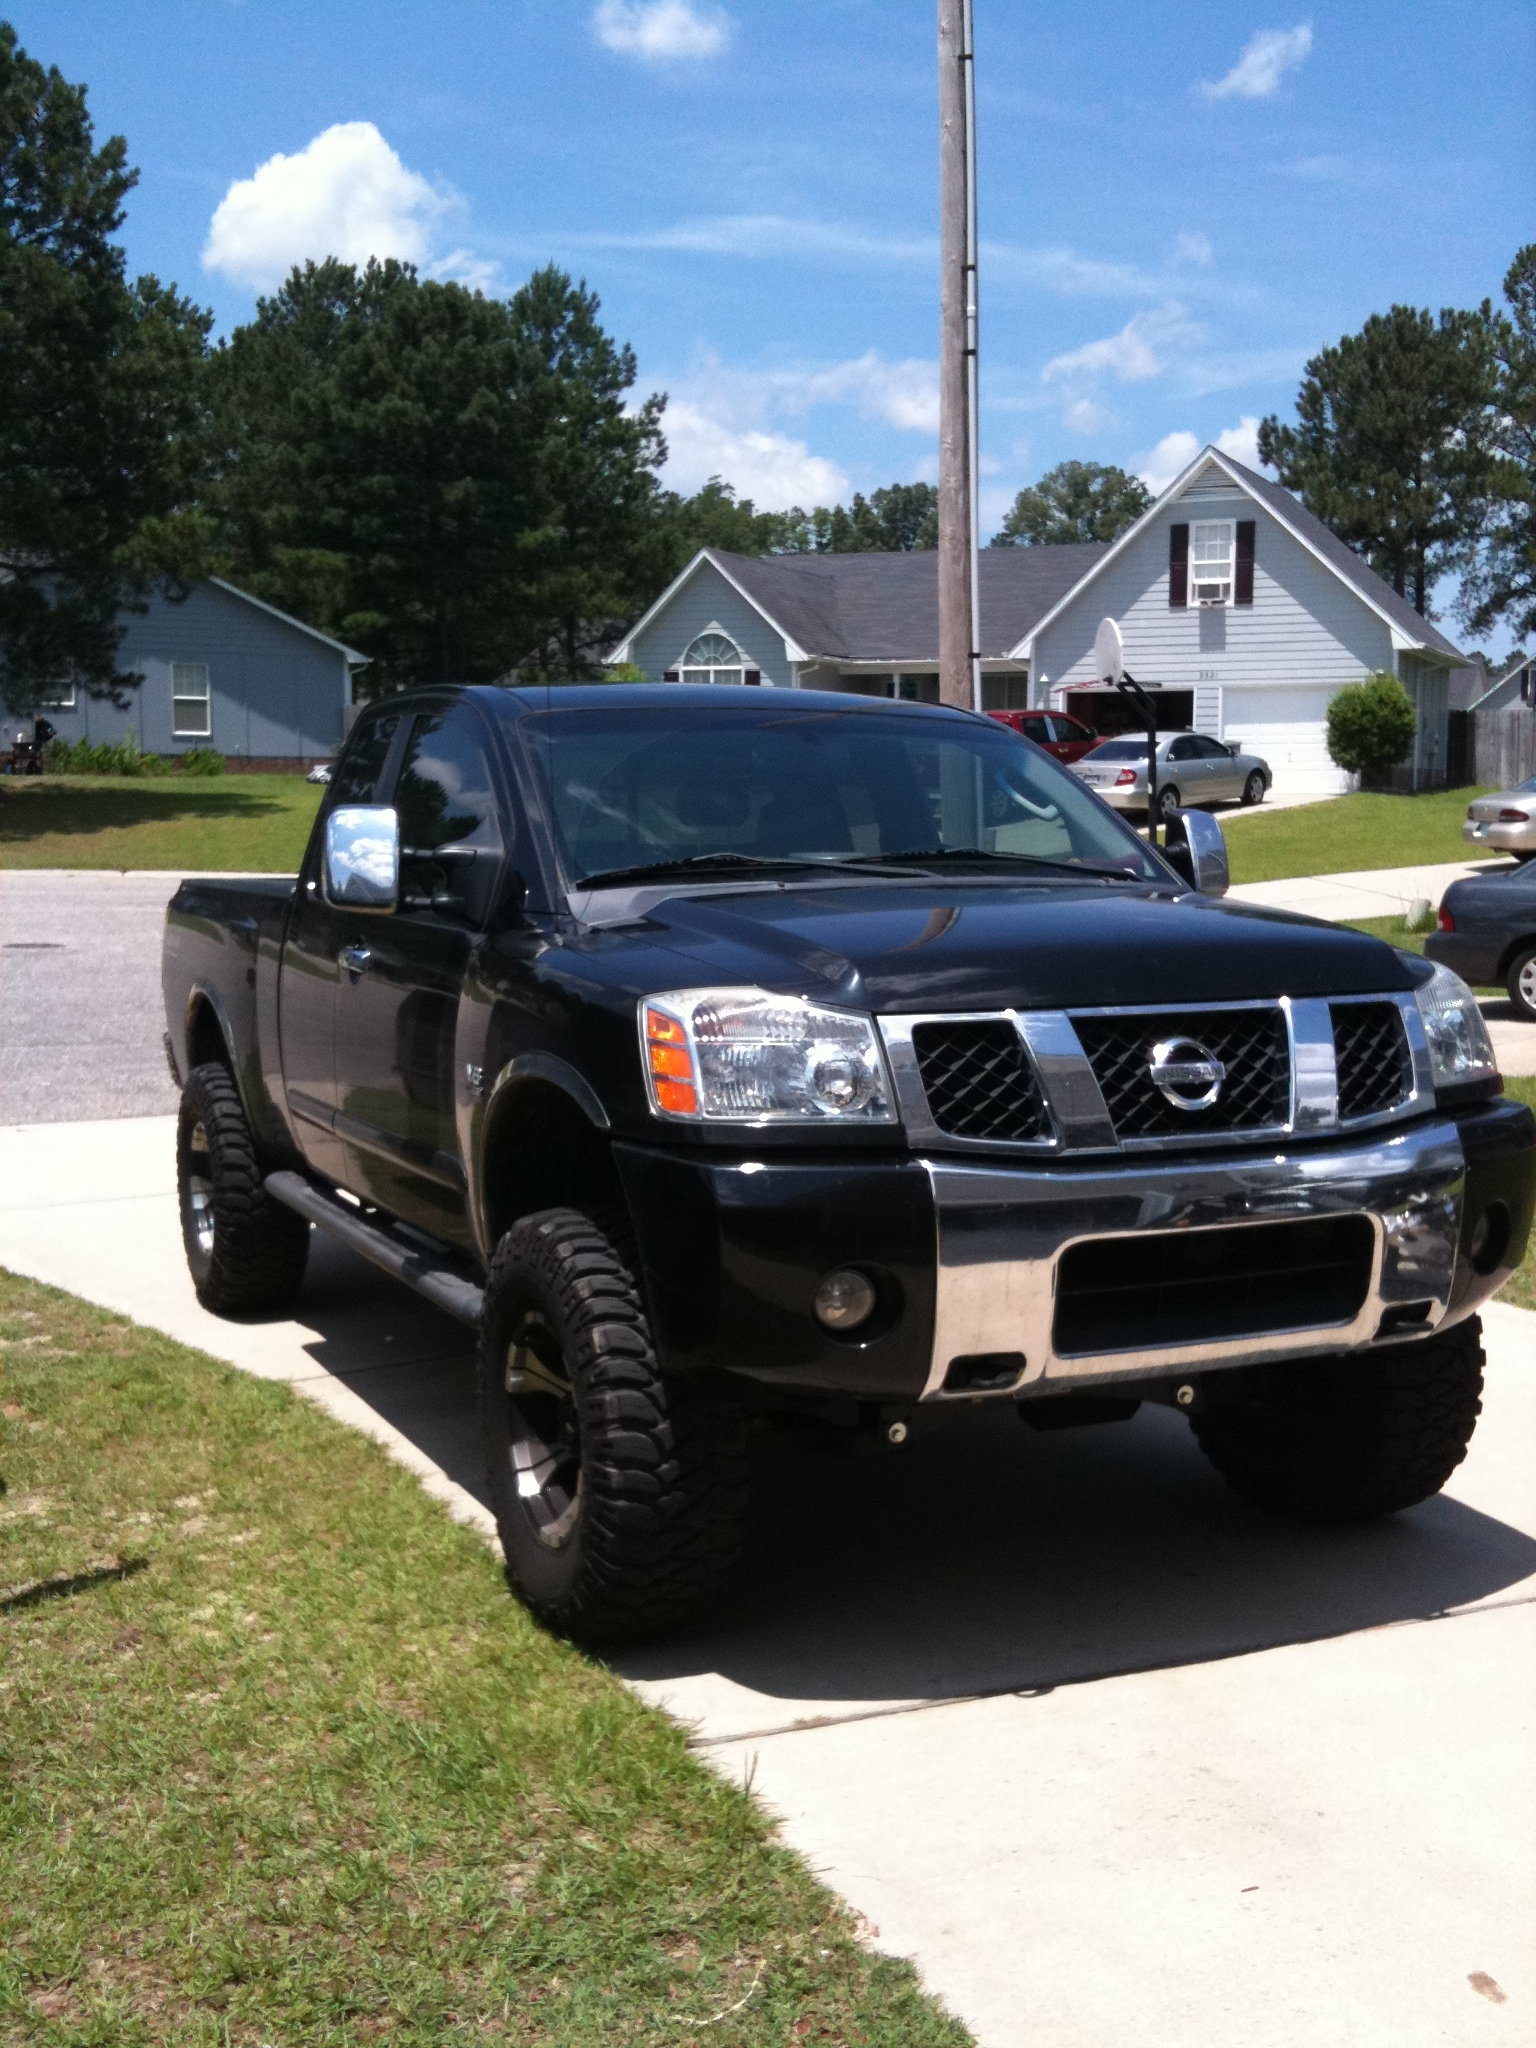 of walton carfinder gray ky on nissan online xe in salepart sale titan bill lot auctions en copart onlyno auto left titl view